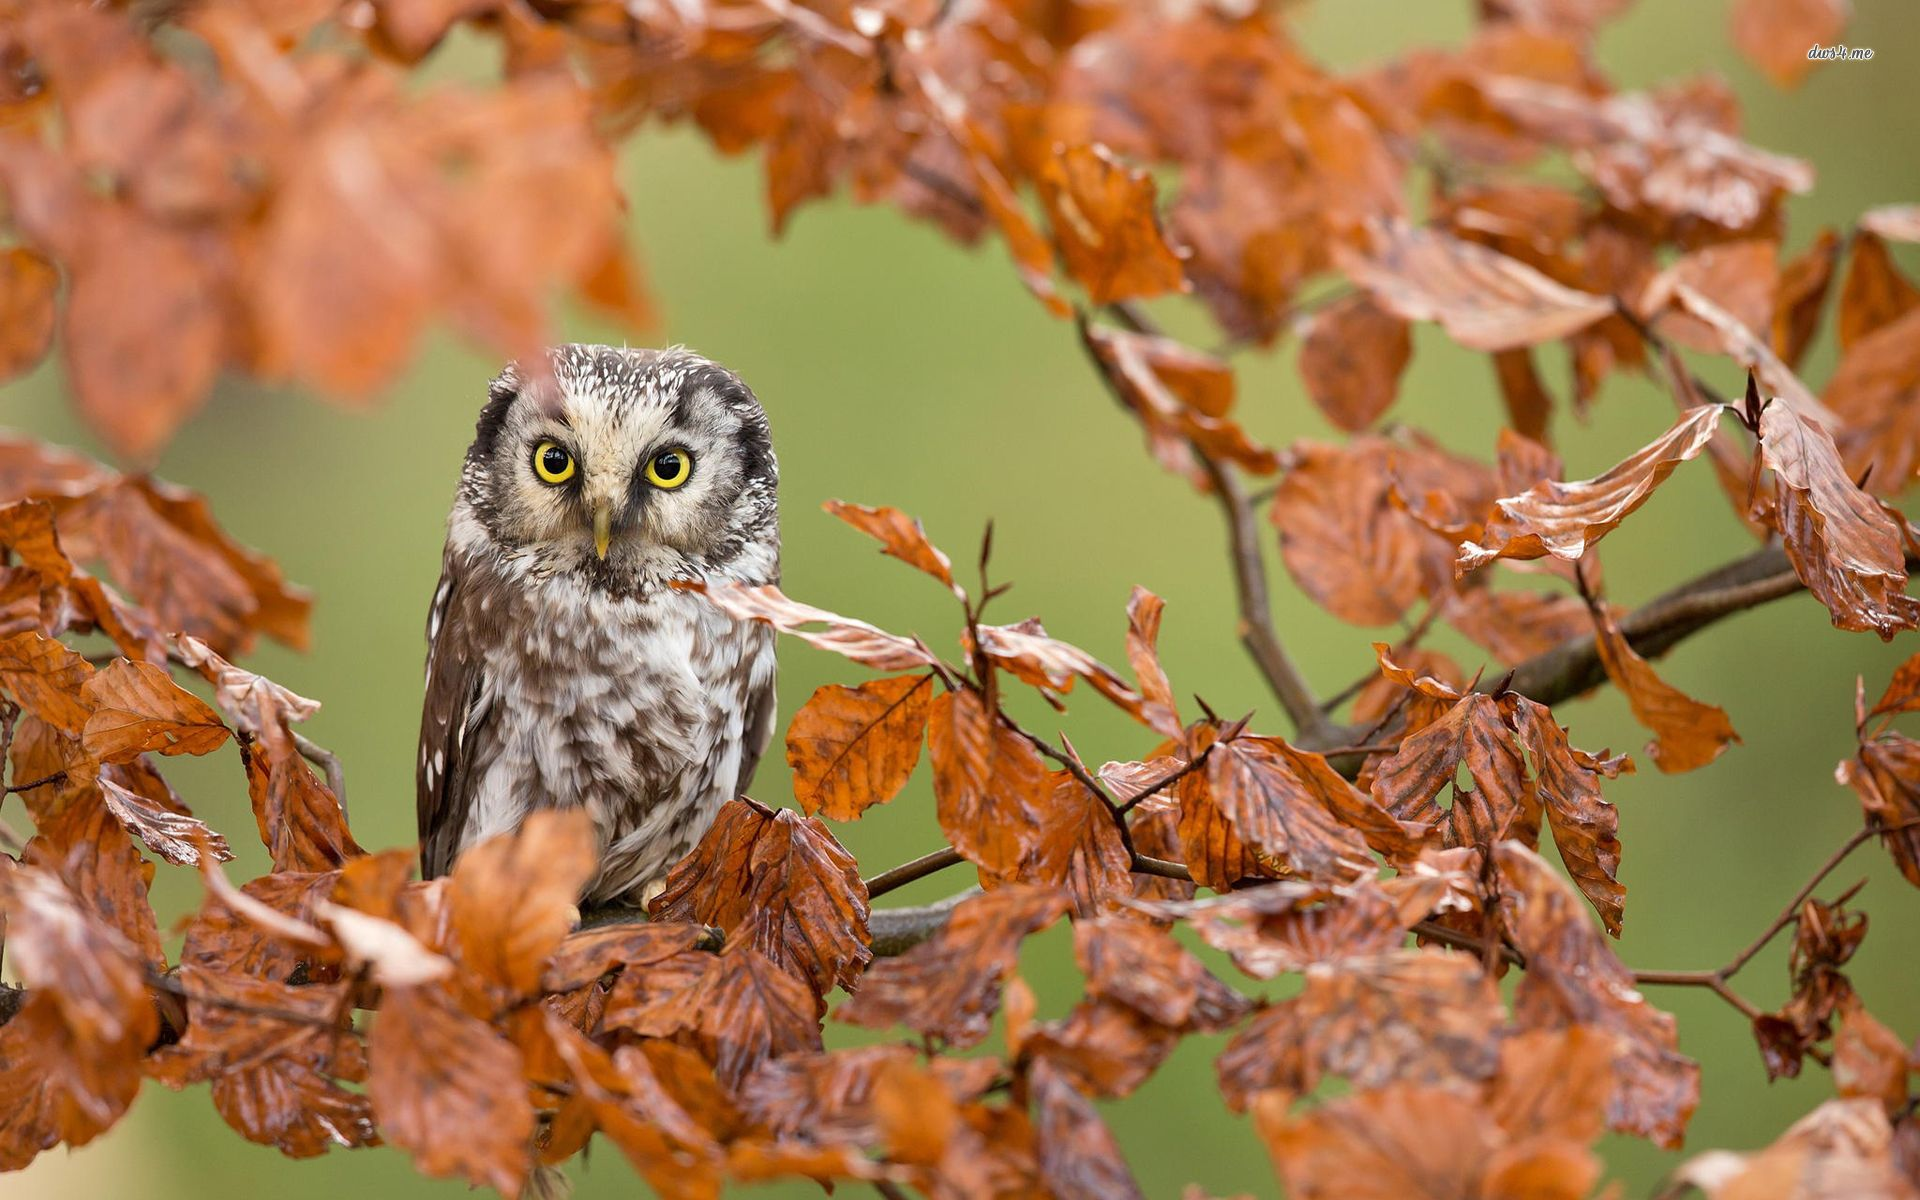 1920x1200 Northern Saw-whet Owl in an autumn tree wallpaper - Animal ...